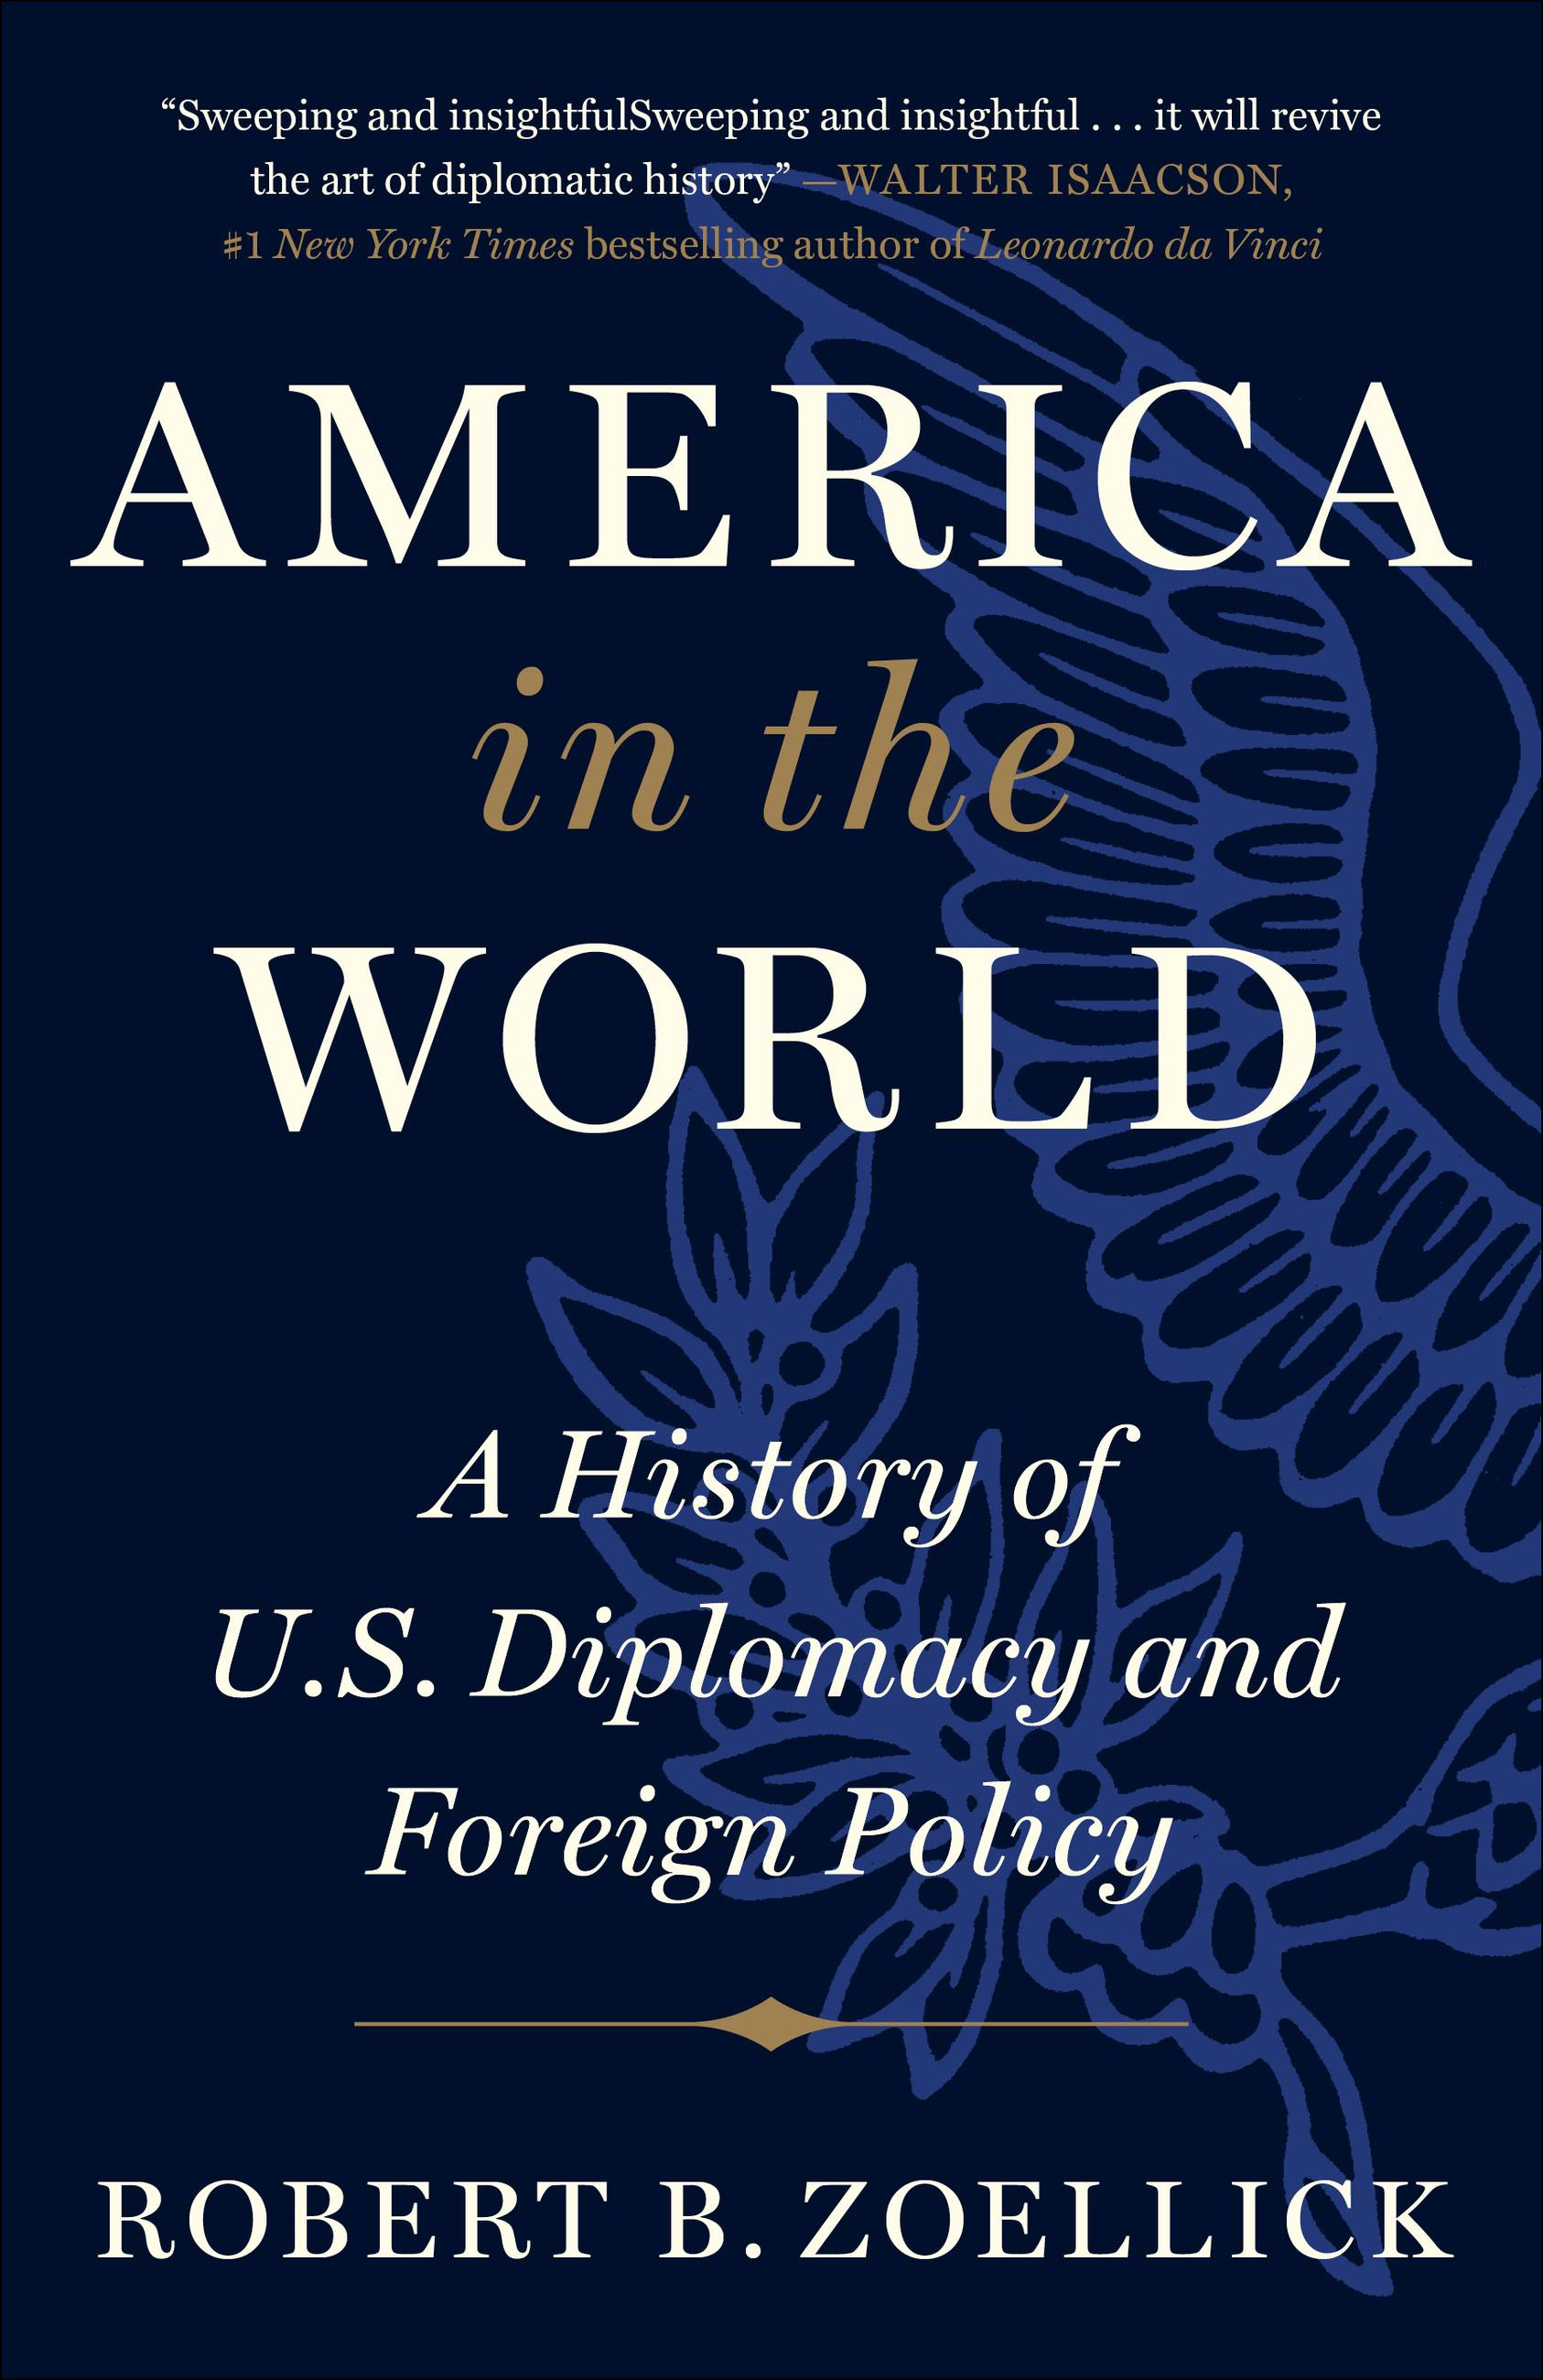 America in the World A History of U.S. Diplomacy and Foreign Policy